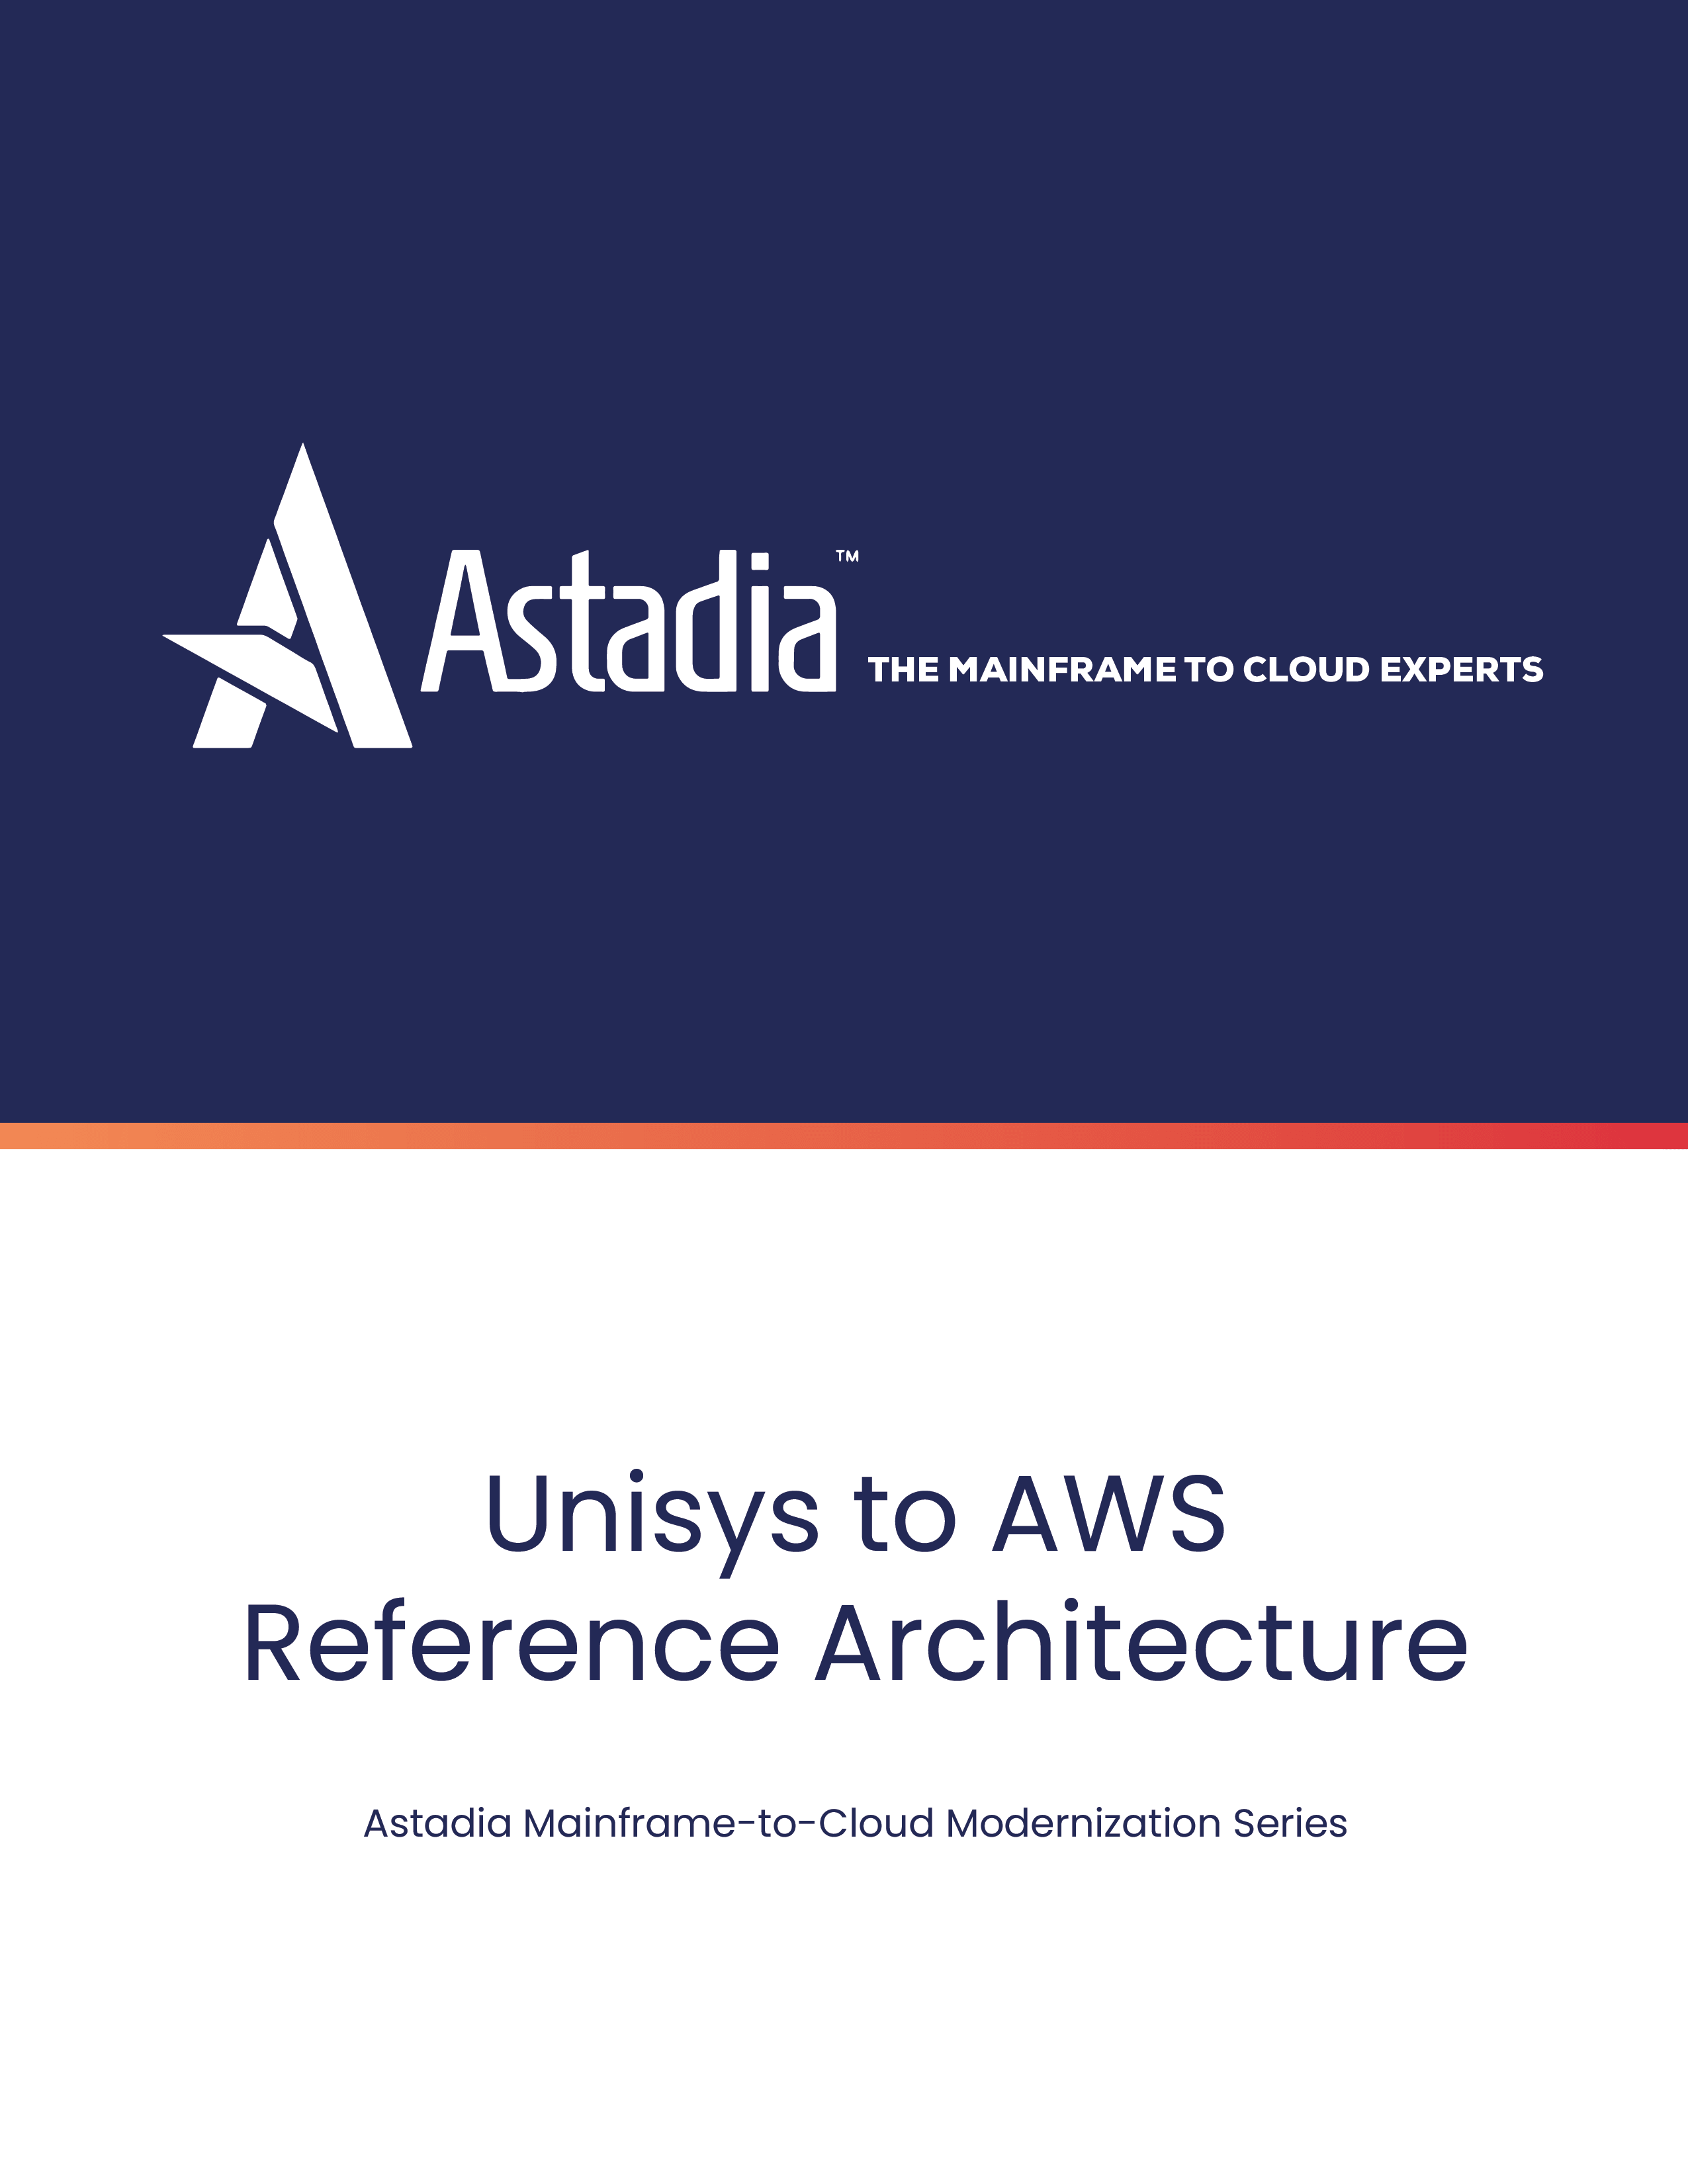 Replatforming A Unisys Mainframe to AWS: Reference Architecture